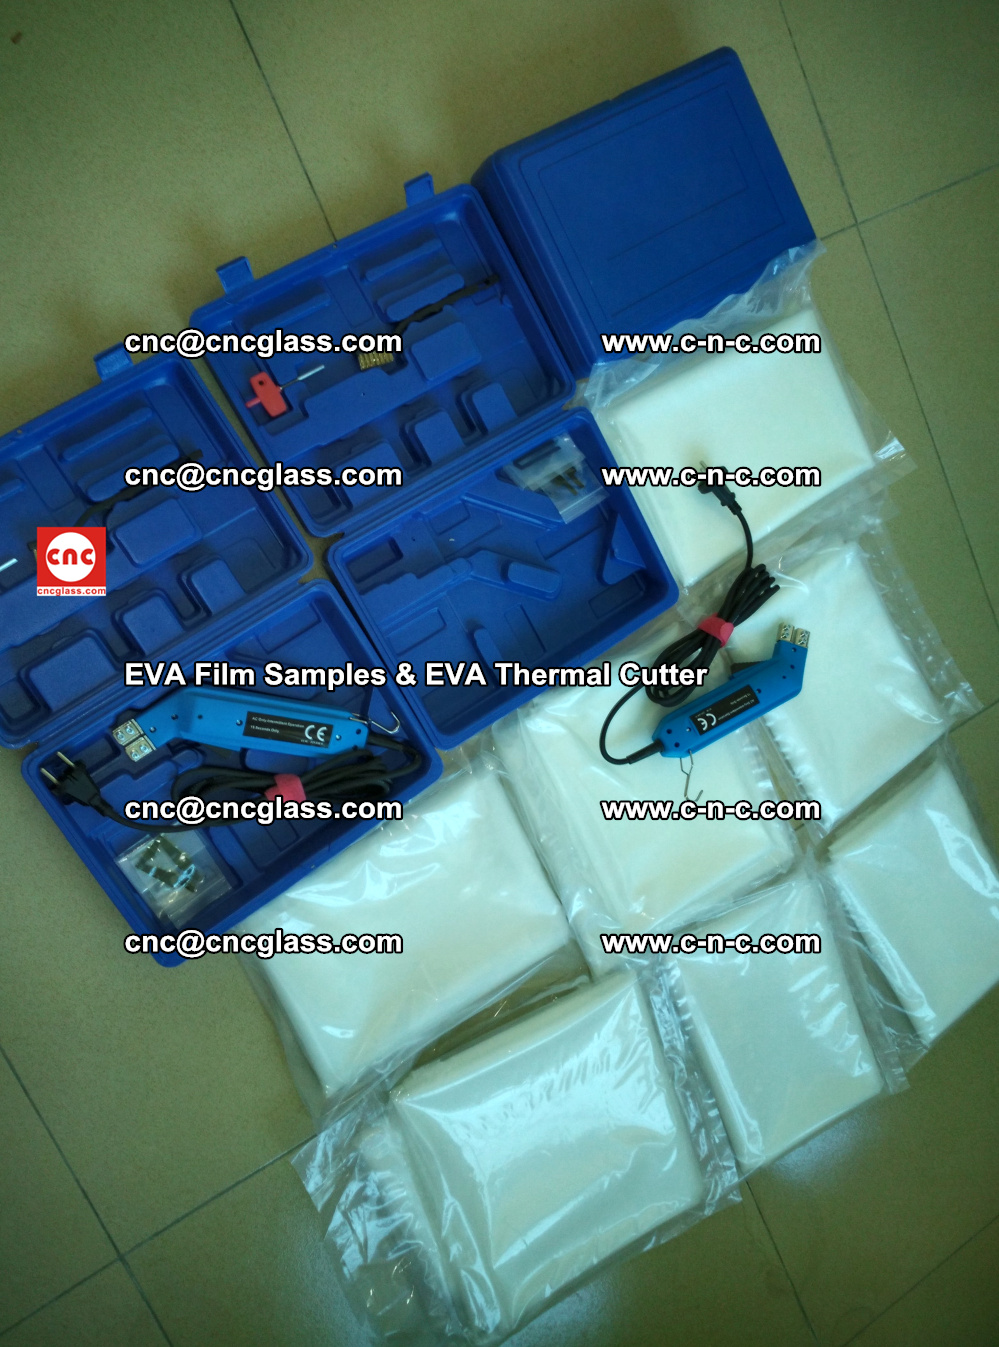 EVAFORCE SUPER CLEAR EVA Film Samples and EVA Thermal Cutter (14)